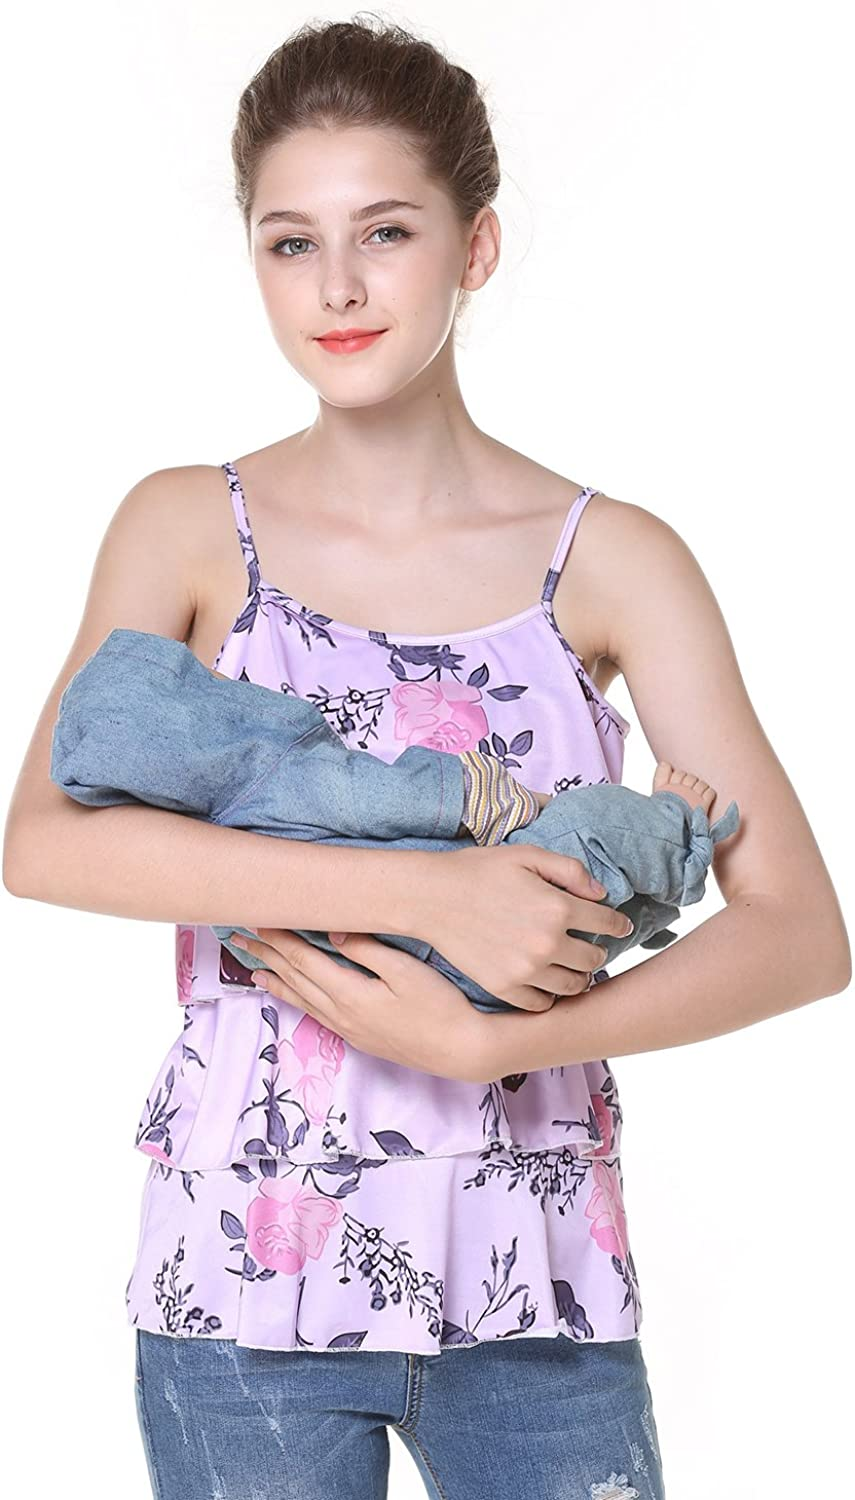 Chulianyouhuo Women's Sleeveless Letter Printing Obstetric Care Tops Breastfeeding Condole Belt TShirts Vest